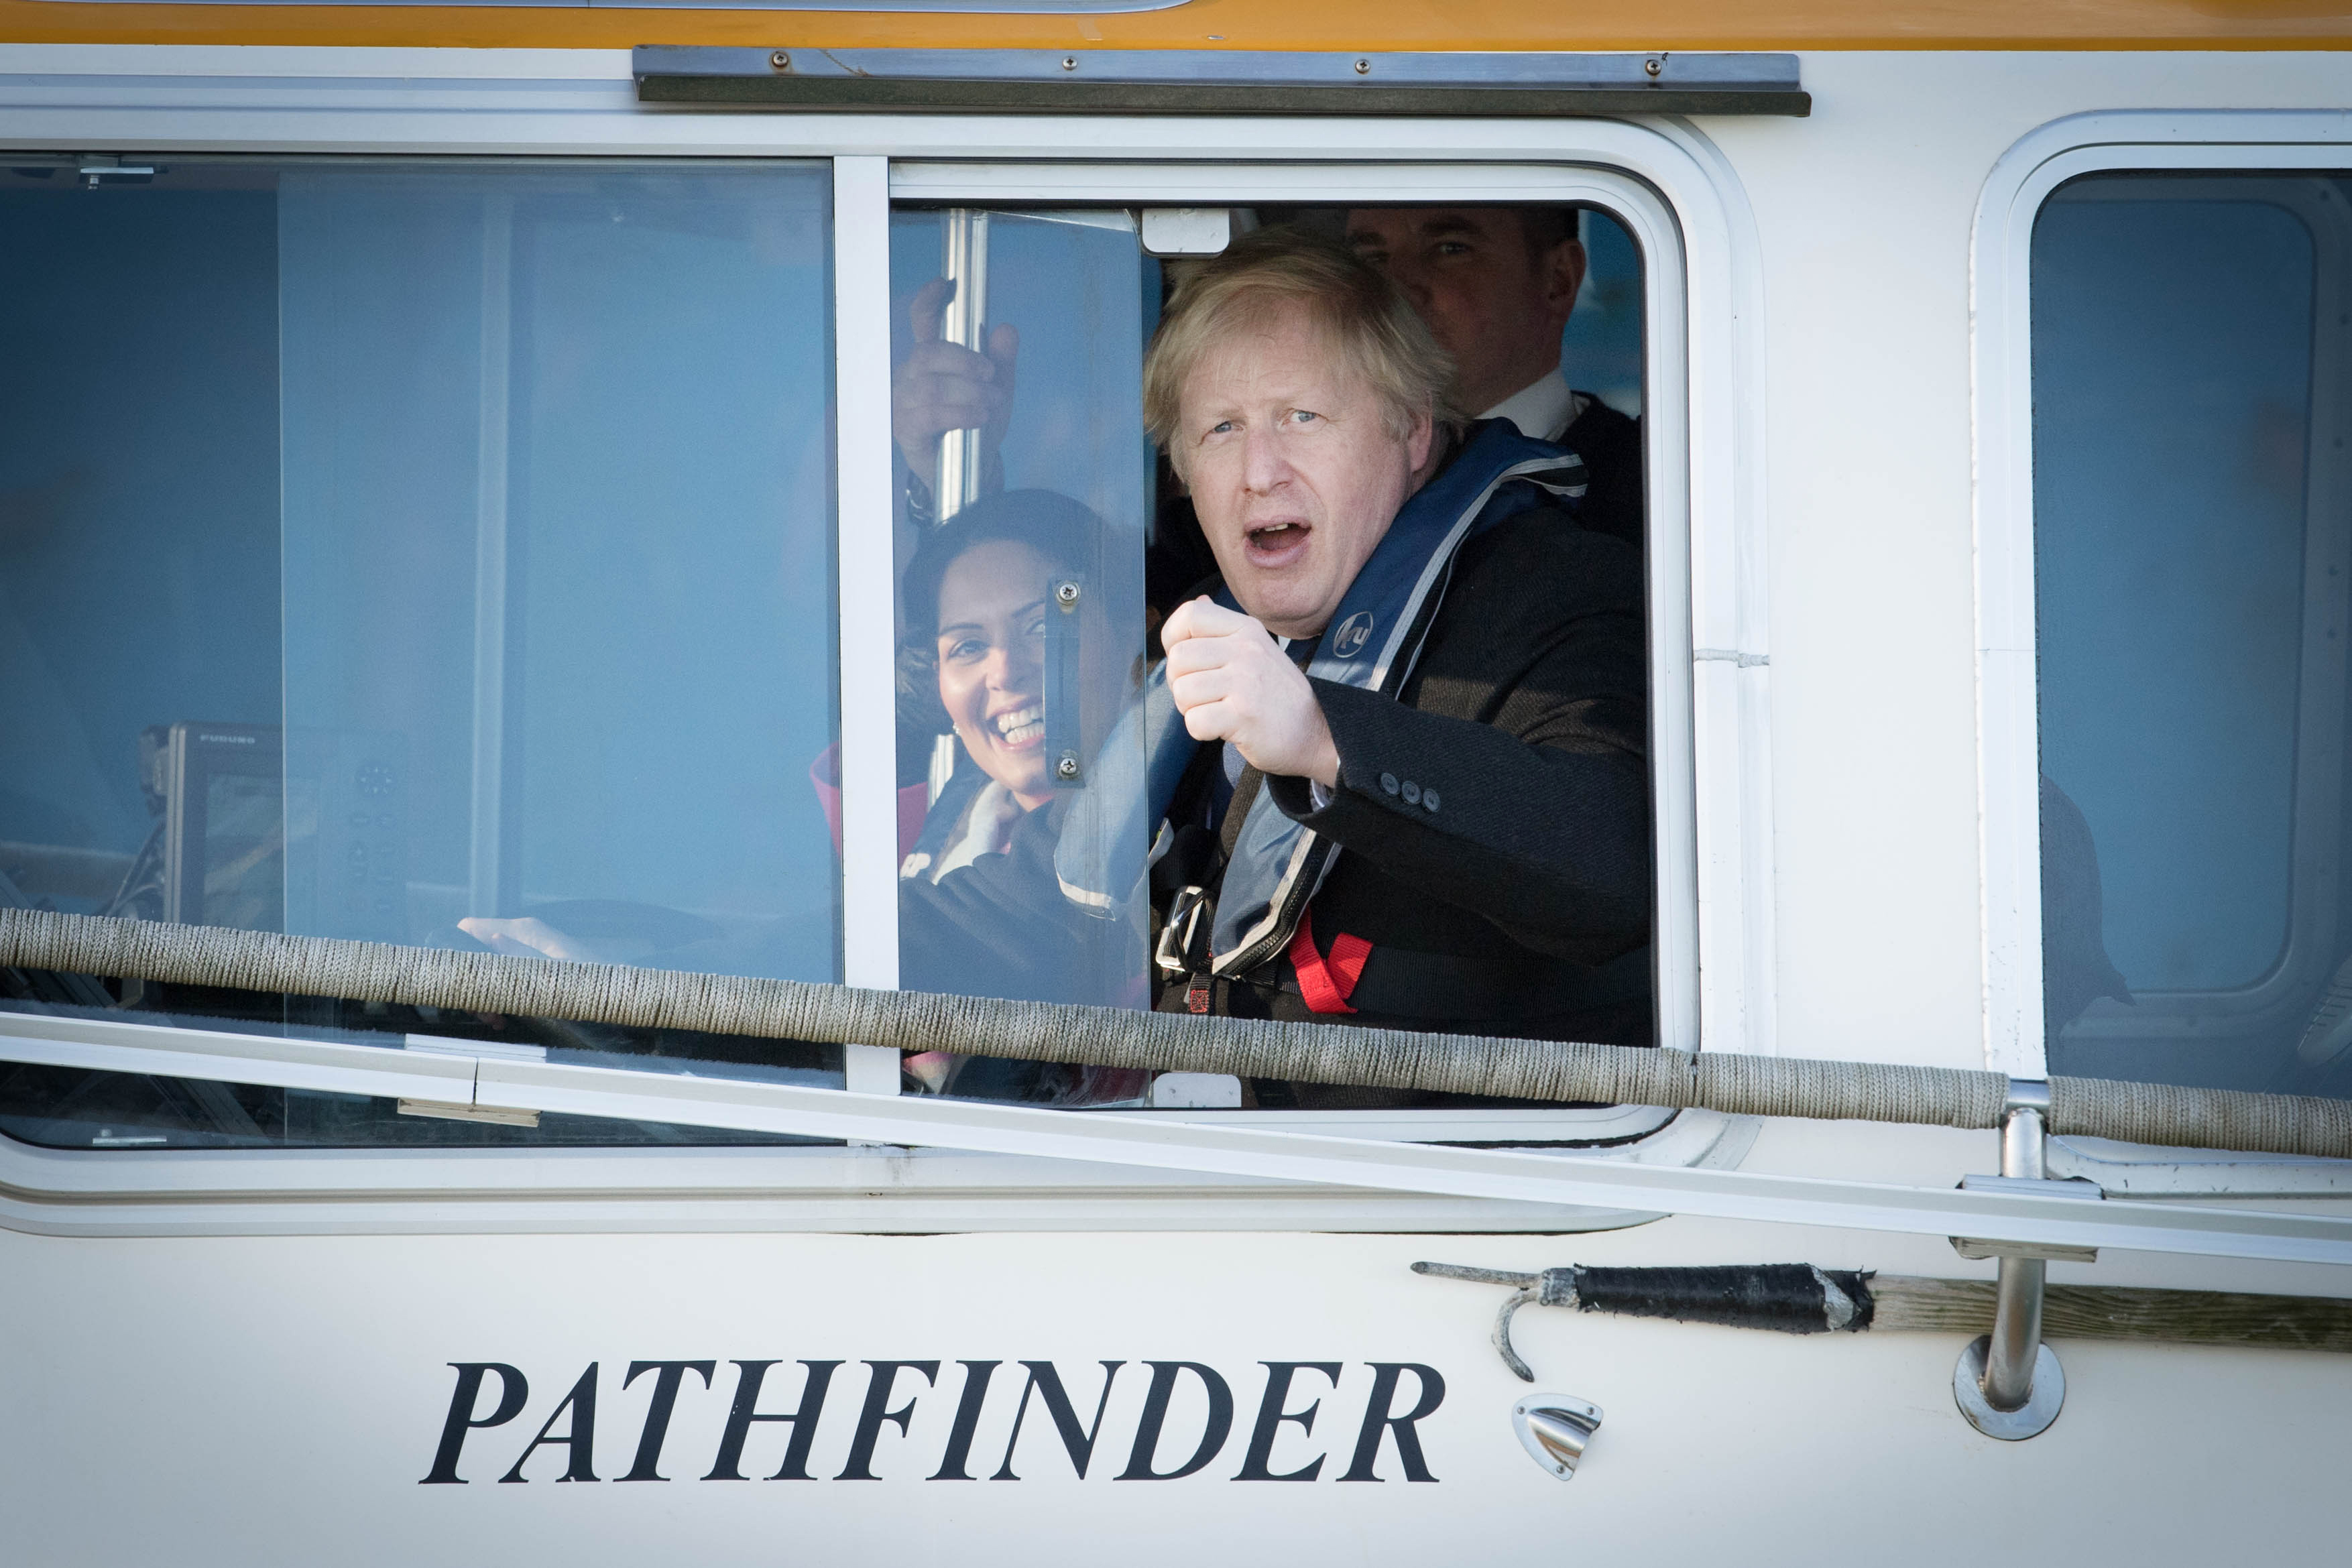 Prime Minister Boris Johnson onboard a boat with Home Secretary Priti Patel during a visit to the Port of Southampton, whilst on the General Election campaign trail.